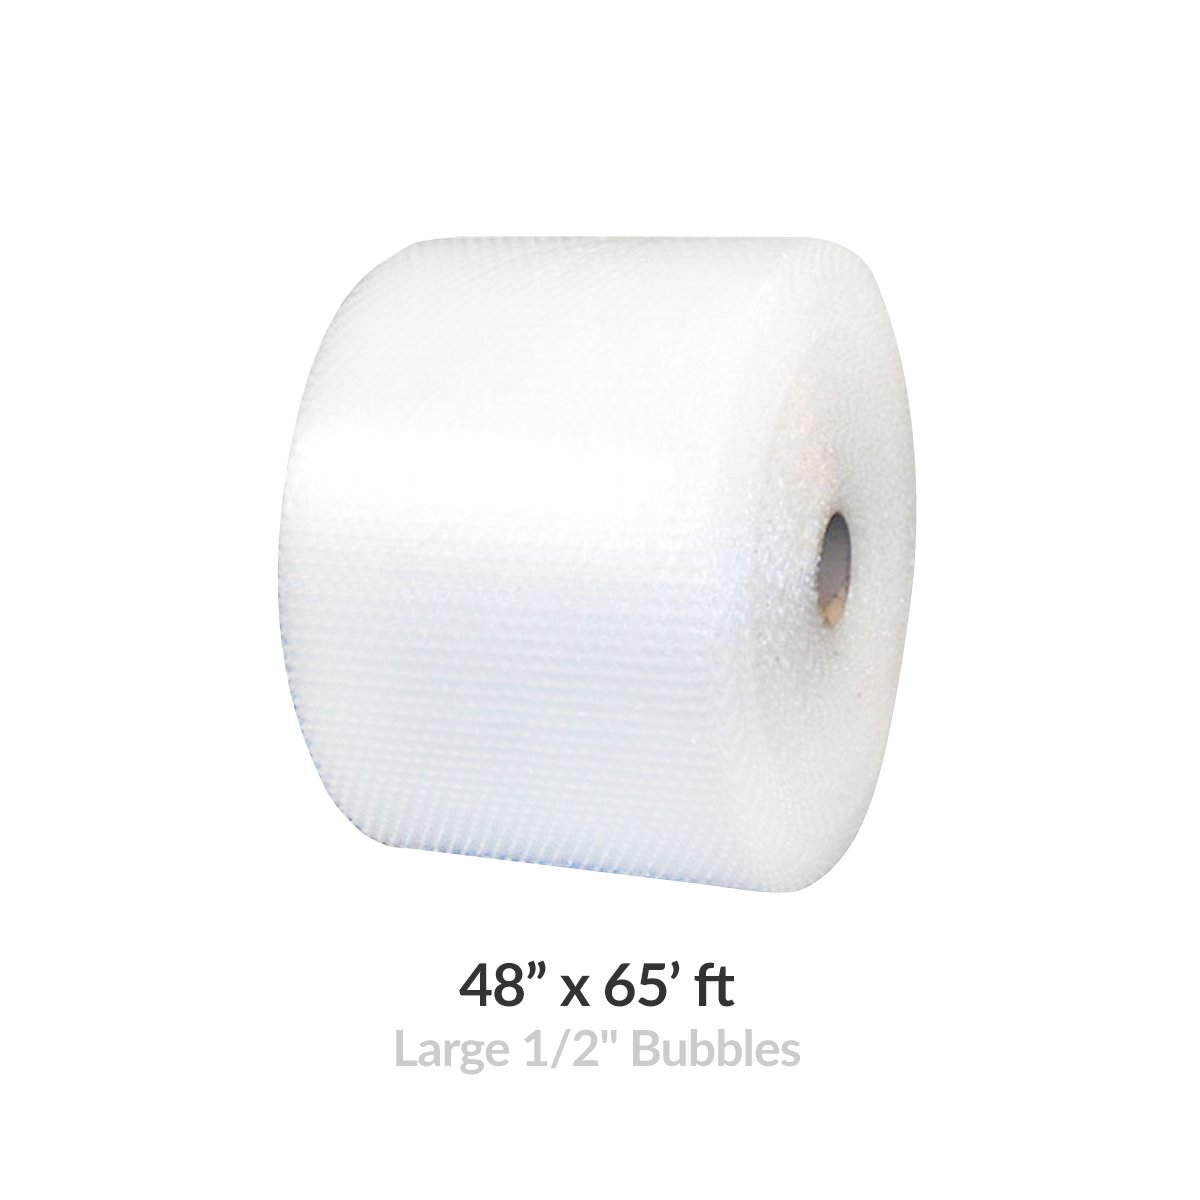 Bubble Roll Wrap - 48'' Wide x 65' - Large Bubbles 1/2'' Perforated 12'' by Uboxes